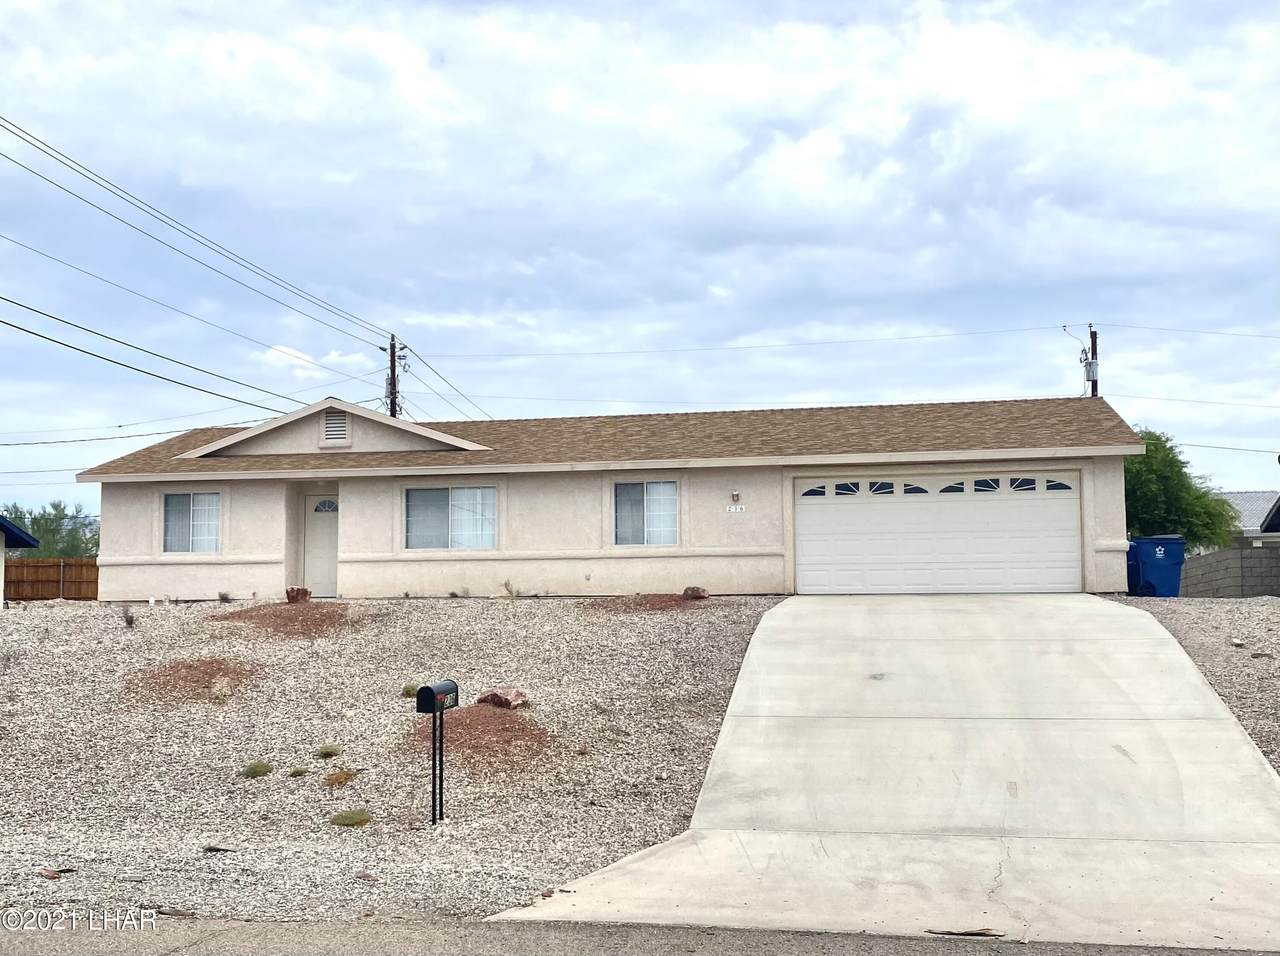 236 Coral Dr - Photo 1